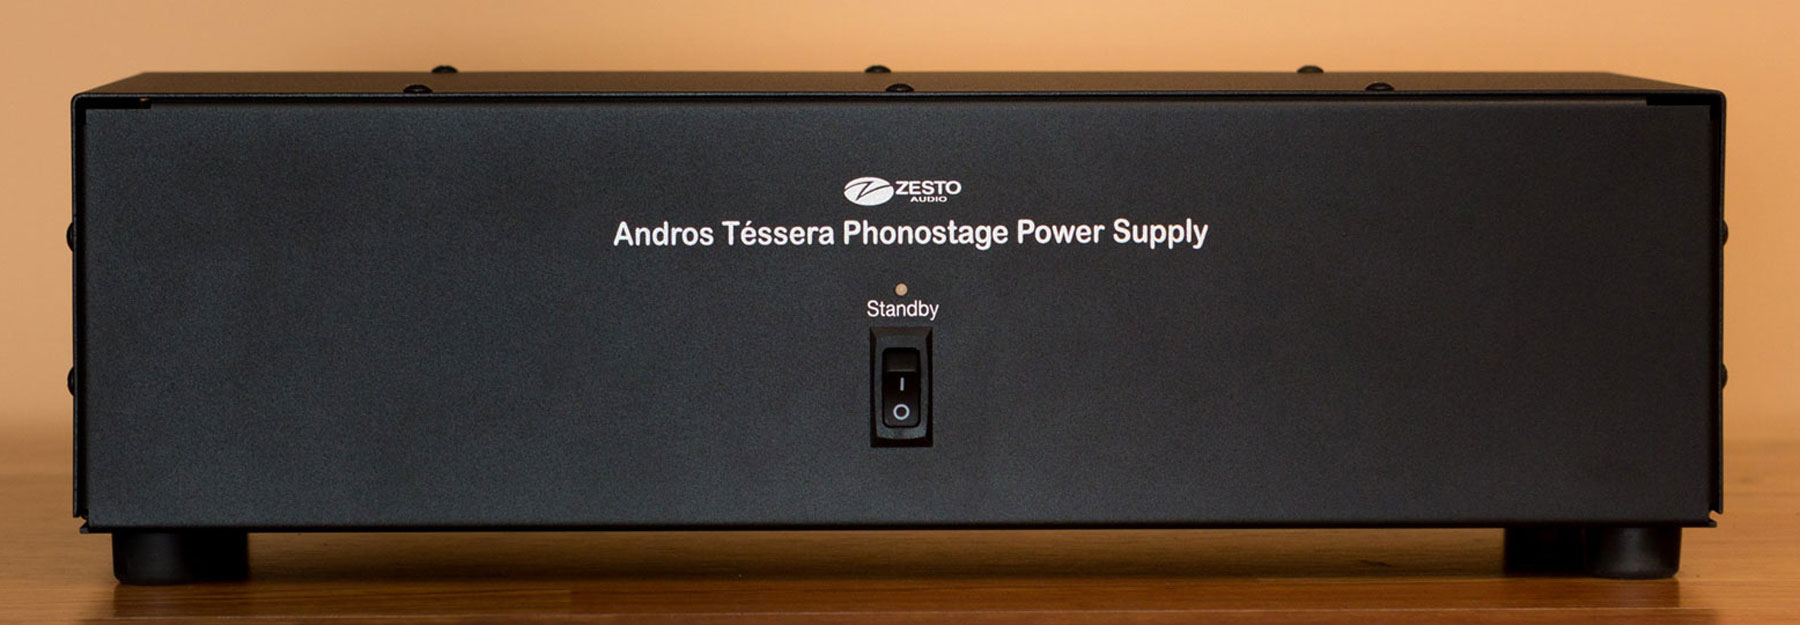 Andros Tessera Phonostage power supply